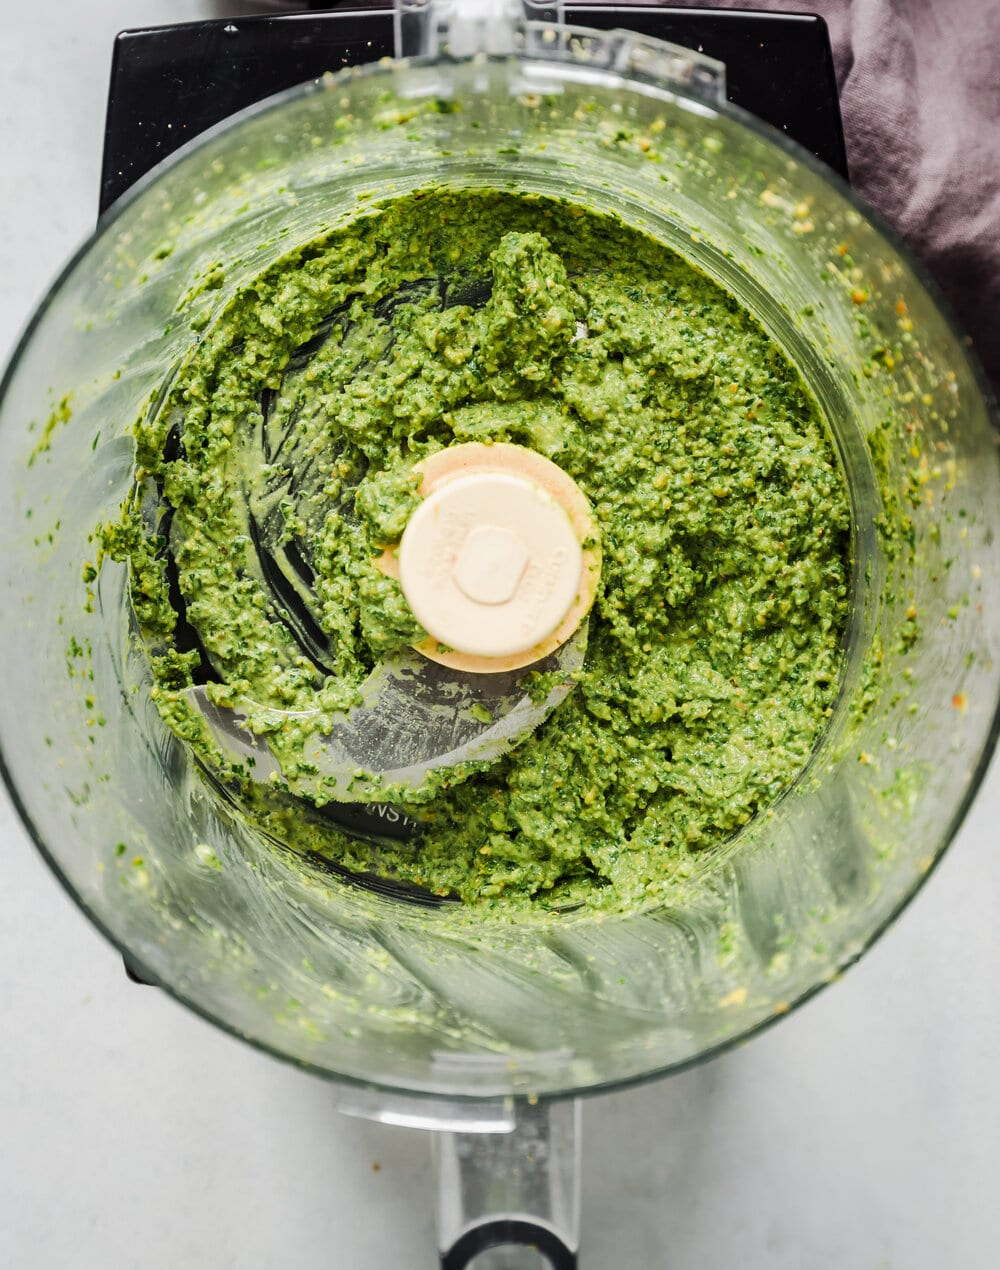 basil pesto blended in a food processor